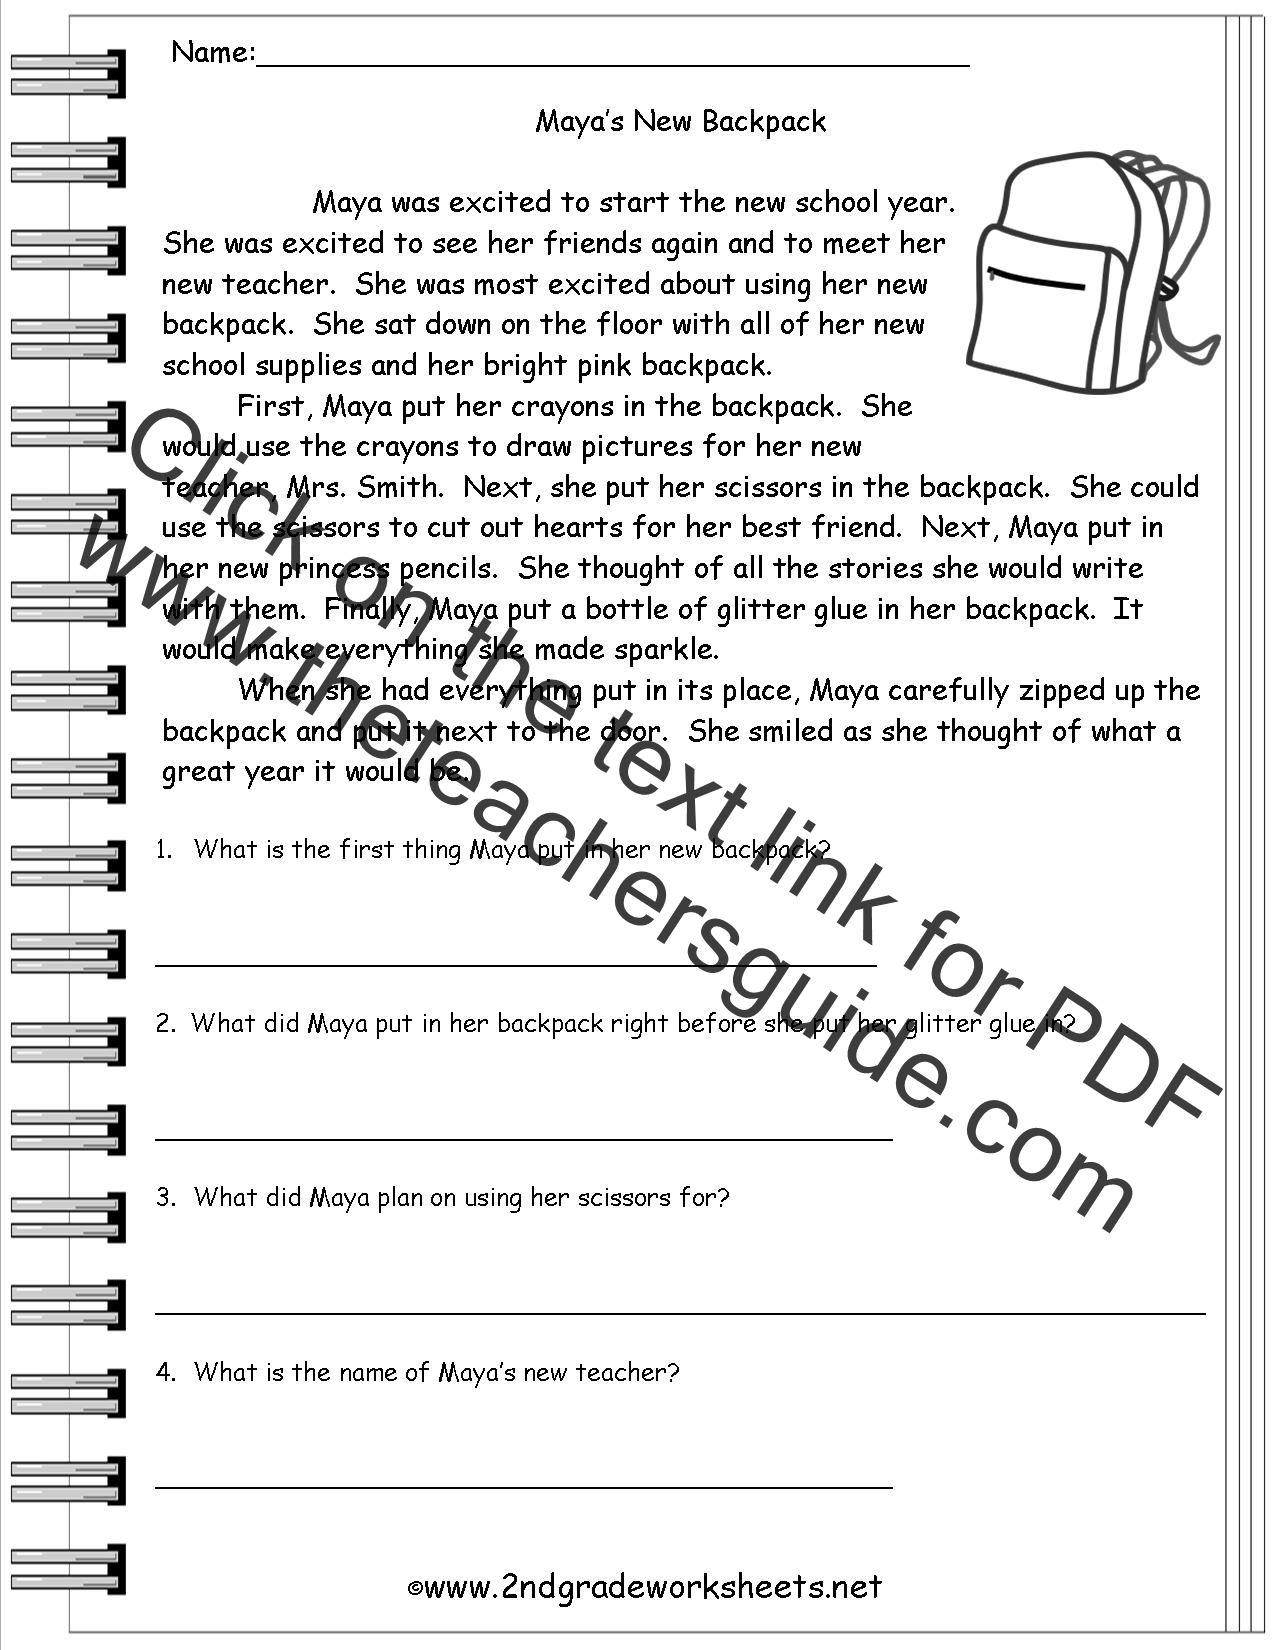 worksheet Grade 8 Comprehension Worksheets Free Printable reading worksheeets worksheets